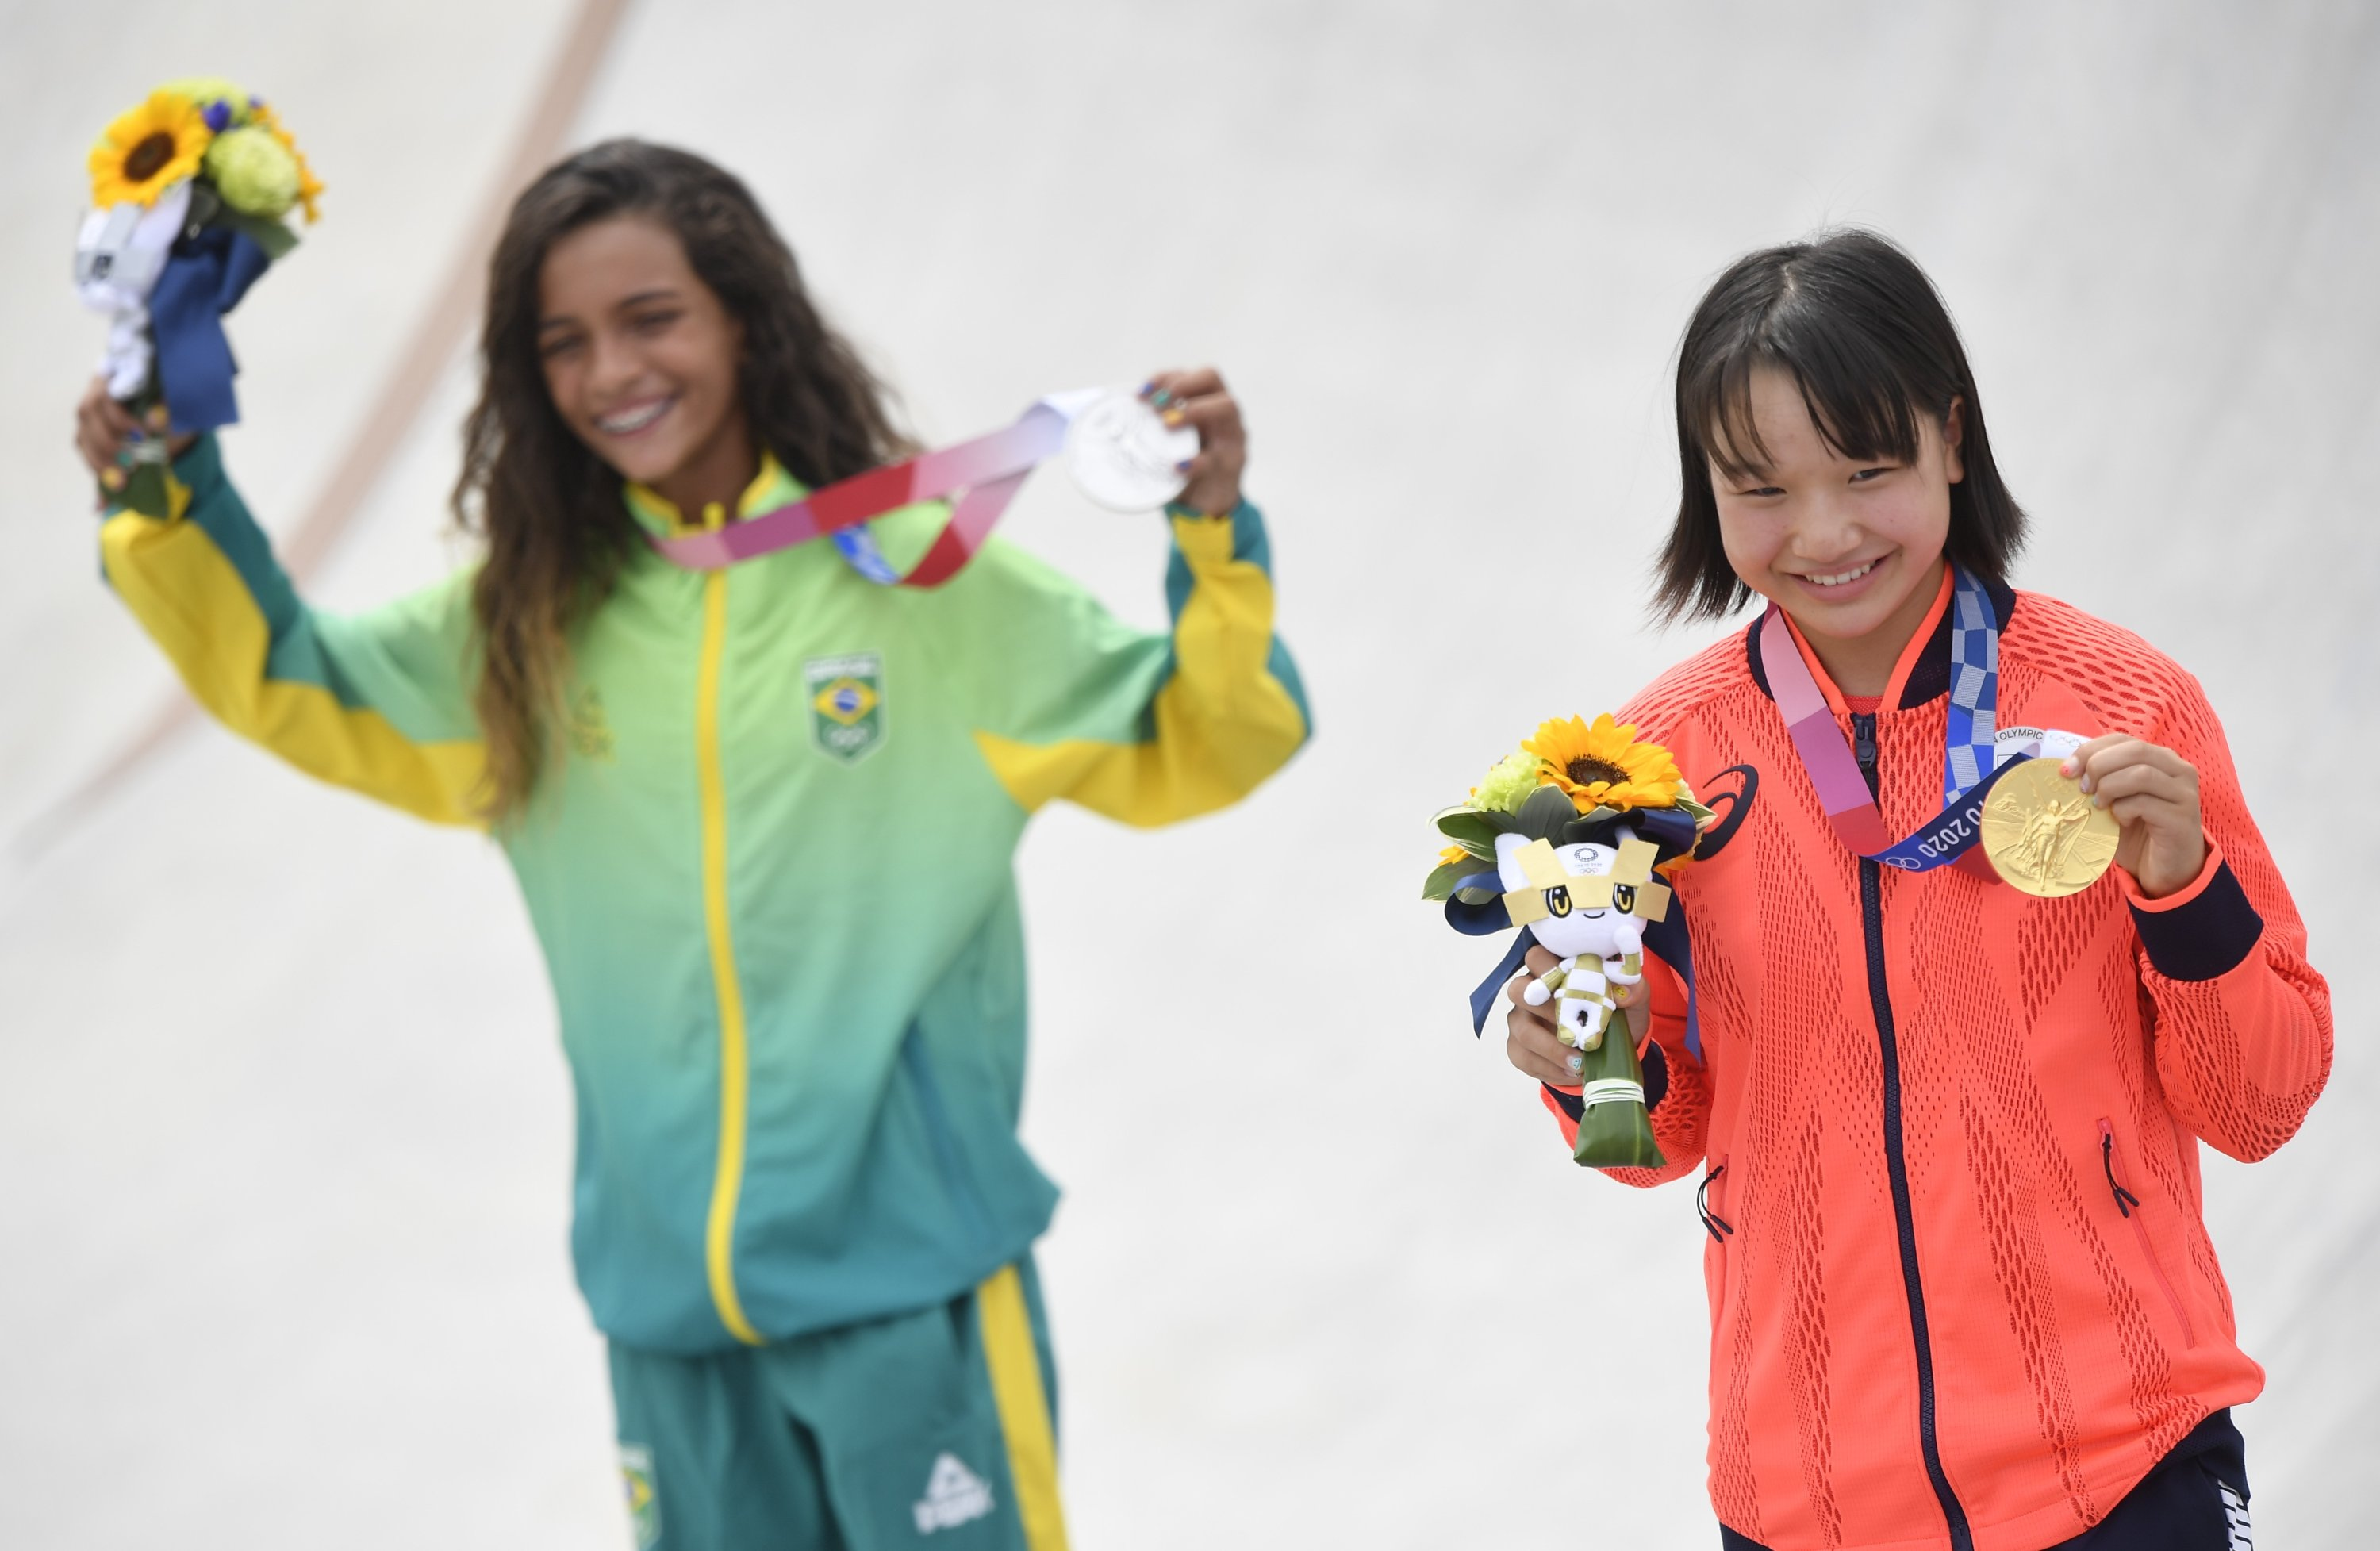 Brazil's Rayssa Leal and Japan's Momiji Nishiya pose with their medals during the medal ceremony for Tokyo 2020 Olympics Women's Street Skateboarding at the Ariake Urban Sports Park, Tokyo, Japan, July 26, 2021. (Reuters Photo)